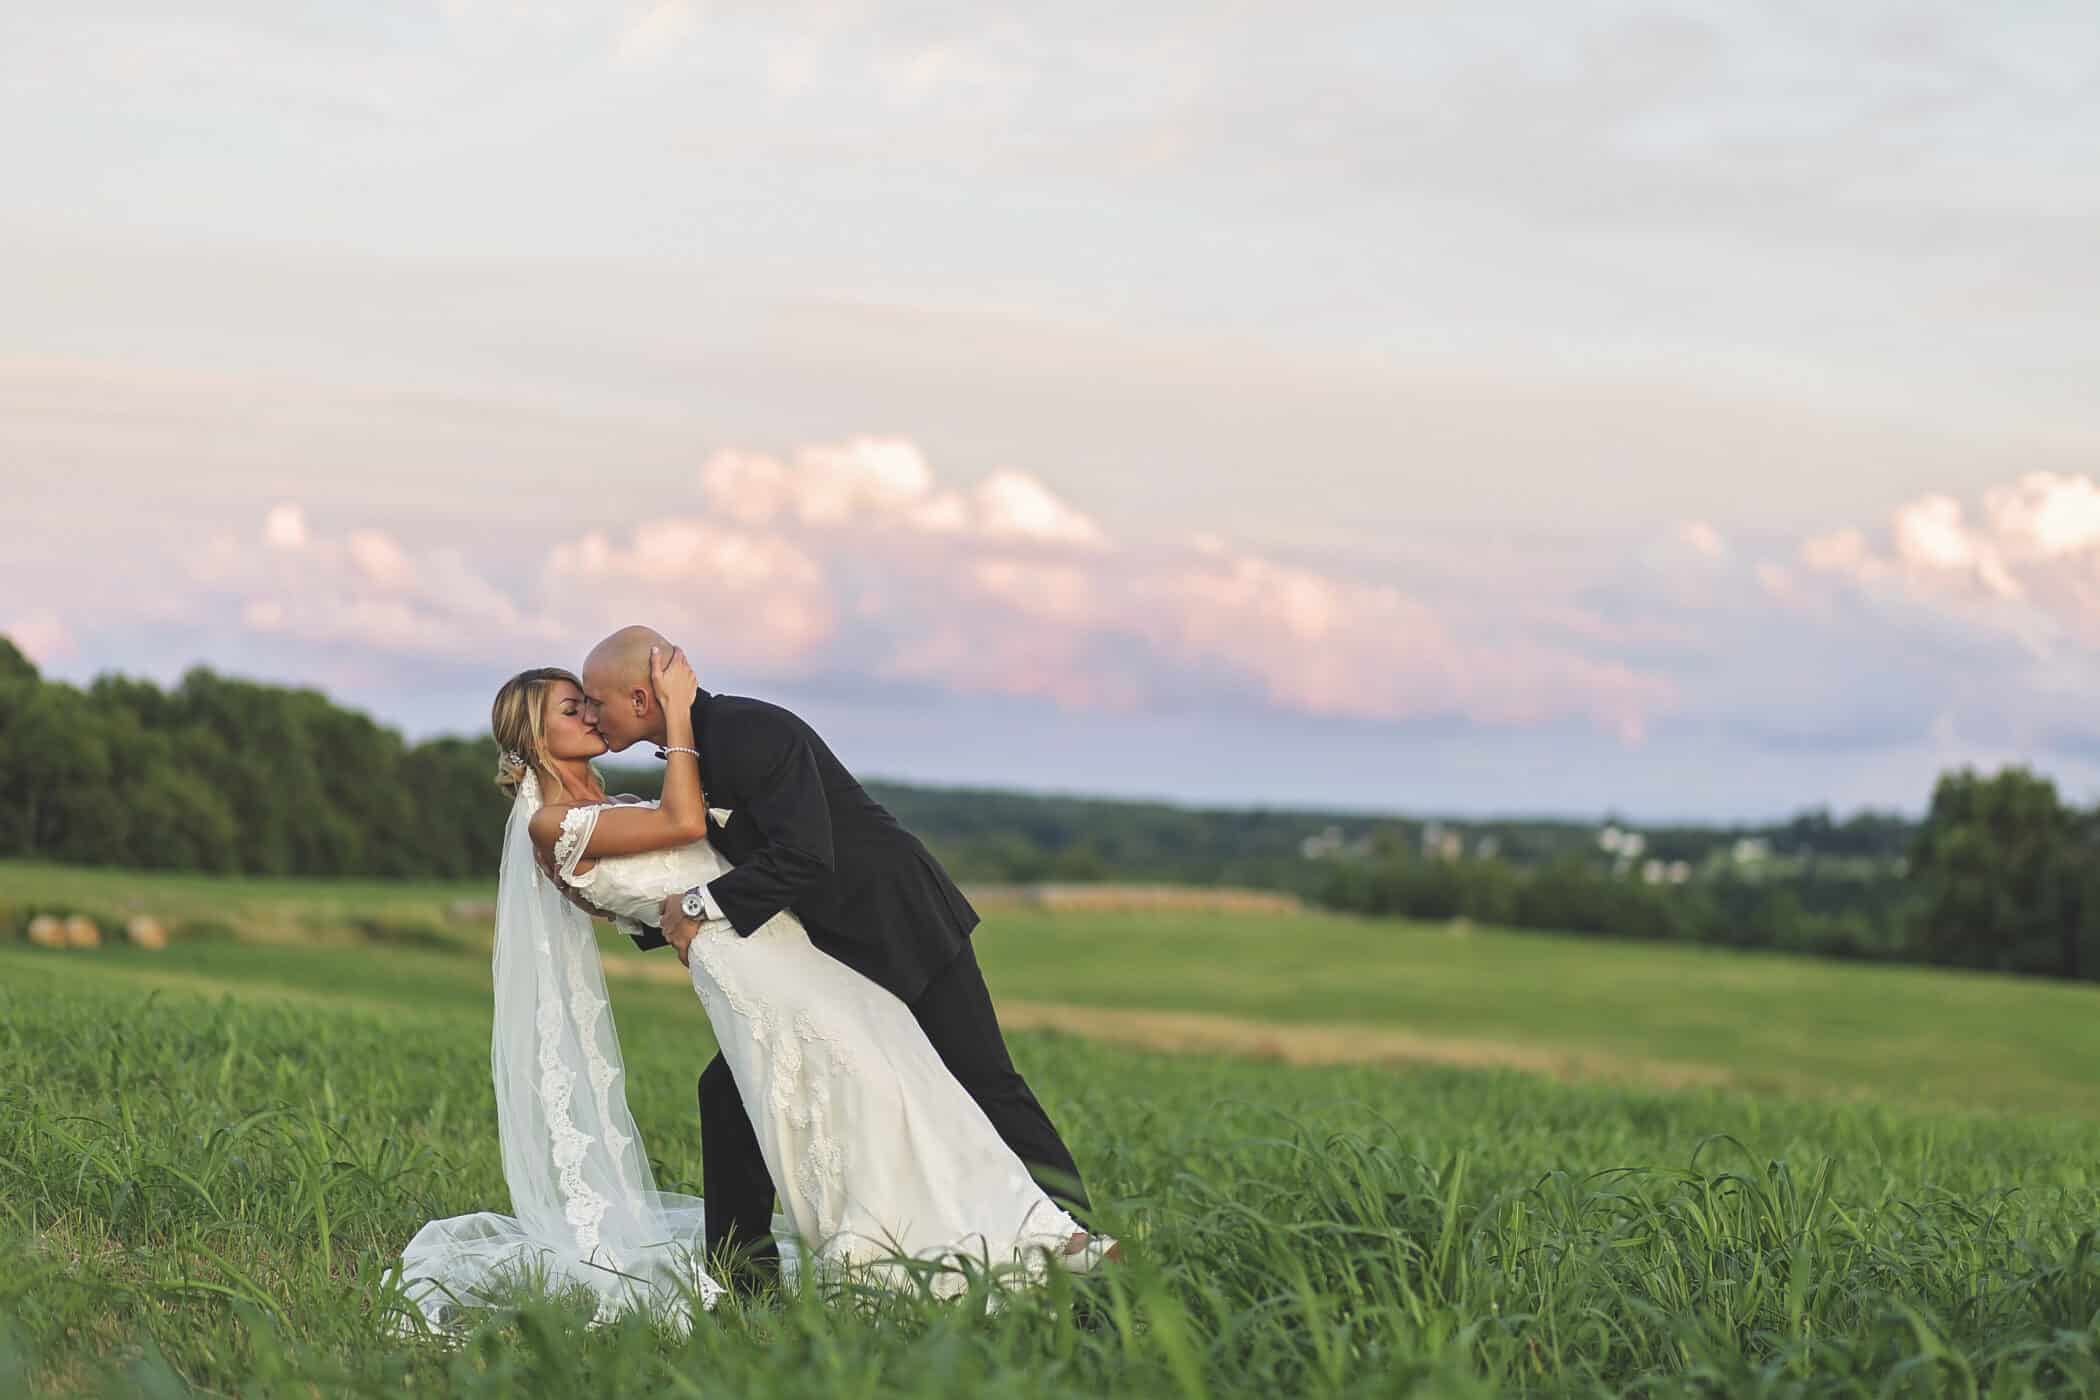 Selecting Your Virginia Wedding Venue | Entwined Events | Venue: West Manor Estate in Forest, VA | Photo Credit: Sherry Conrad Photography